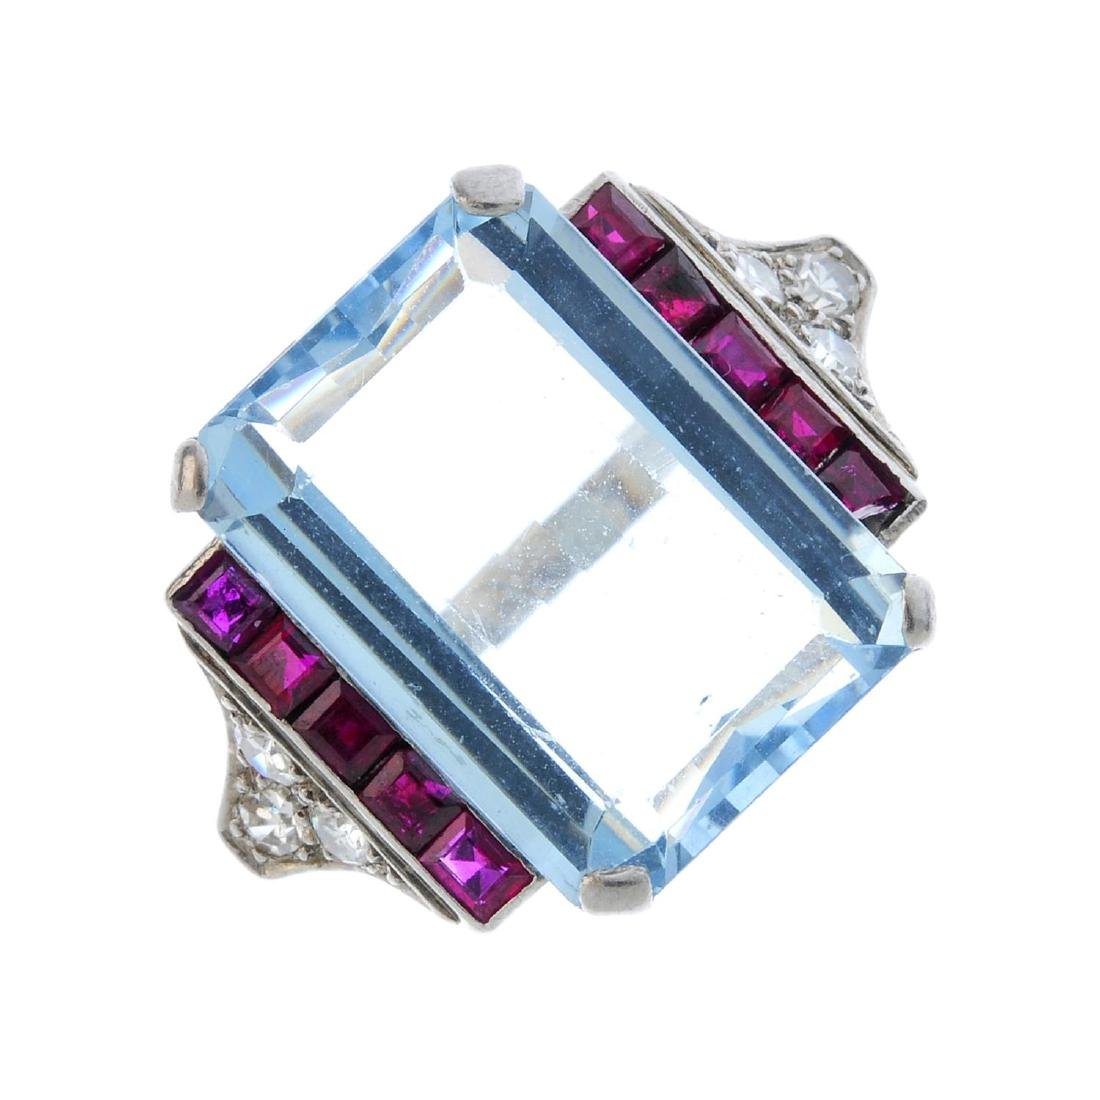 A 1940s aquamarine, ruby and diamond cocktail ring. The